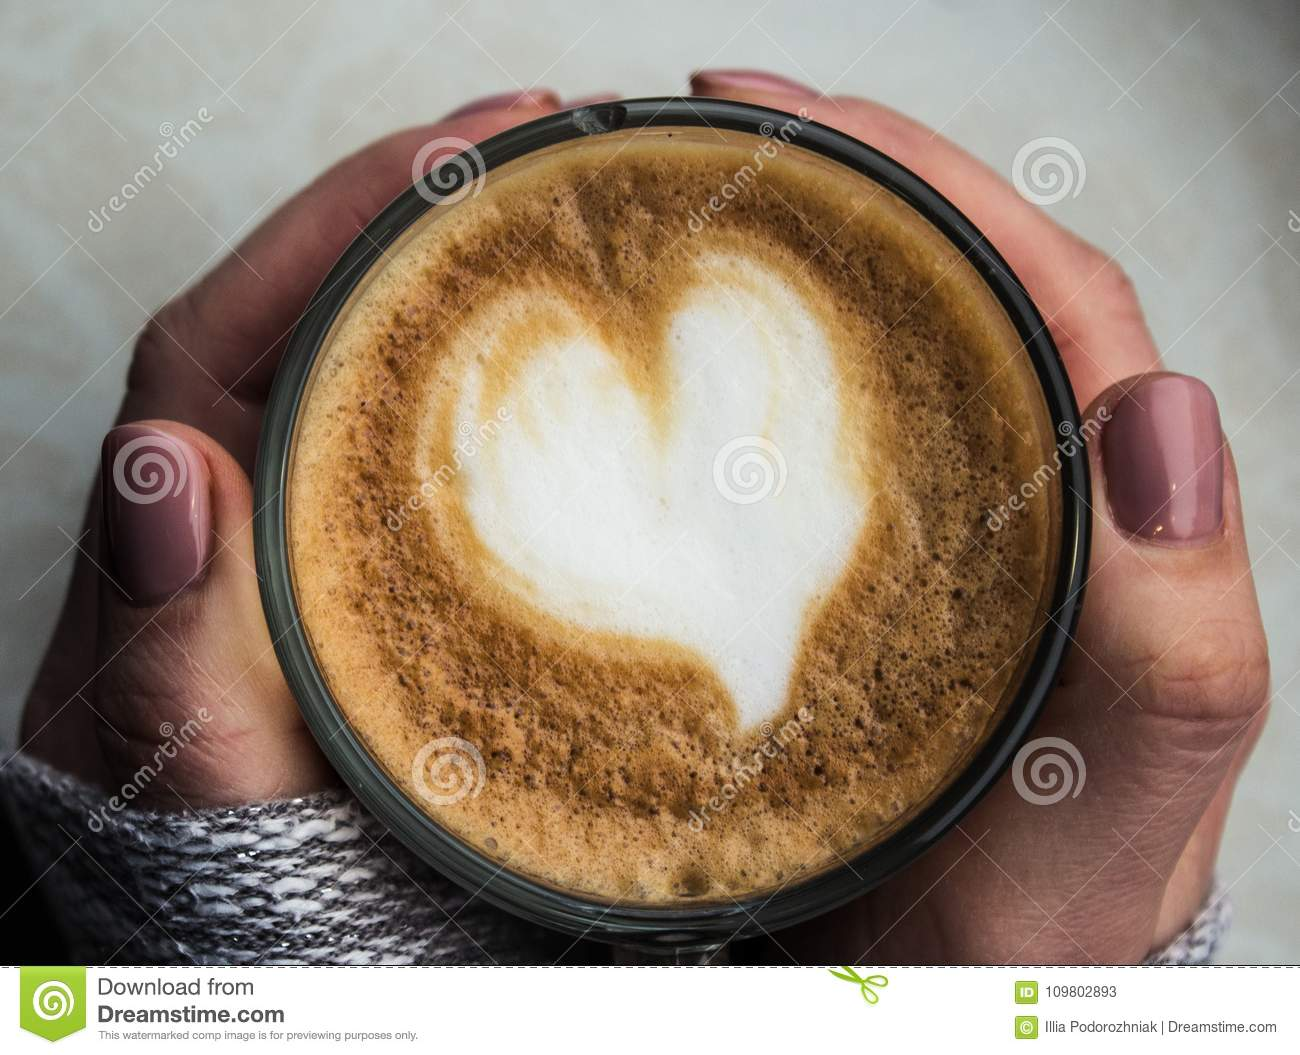 Caffeine And Your Heart